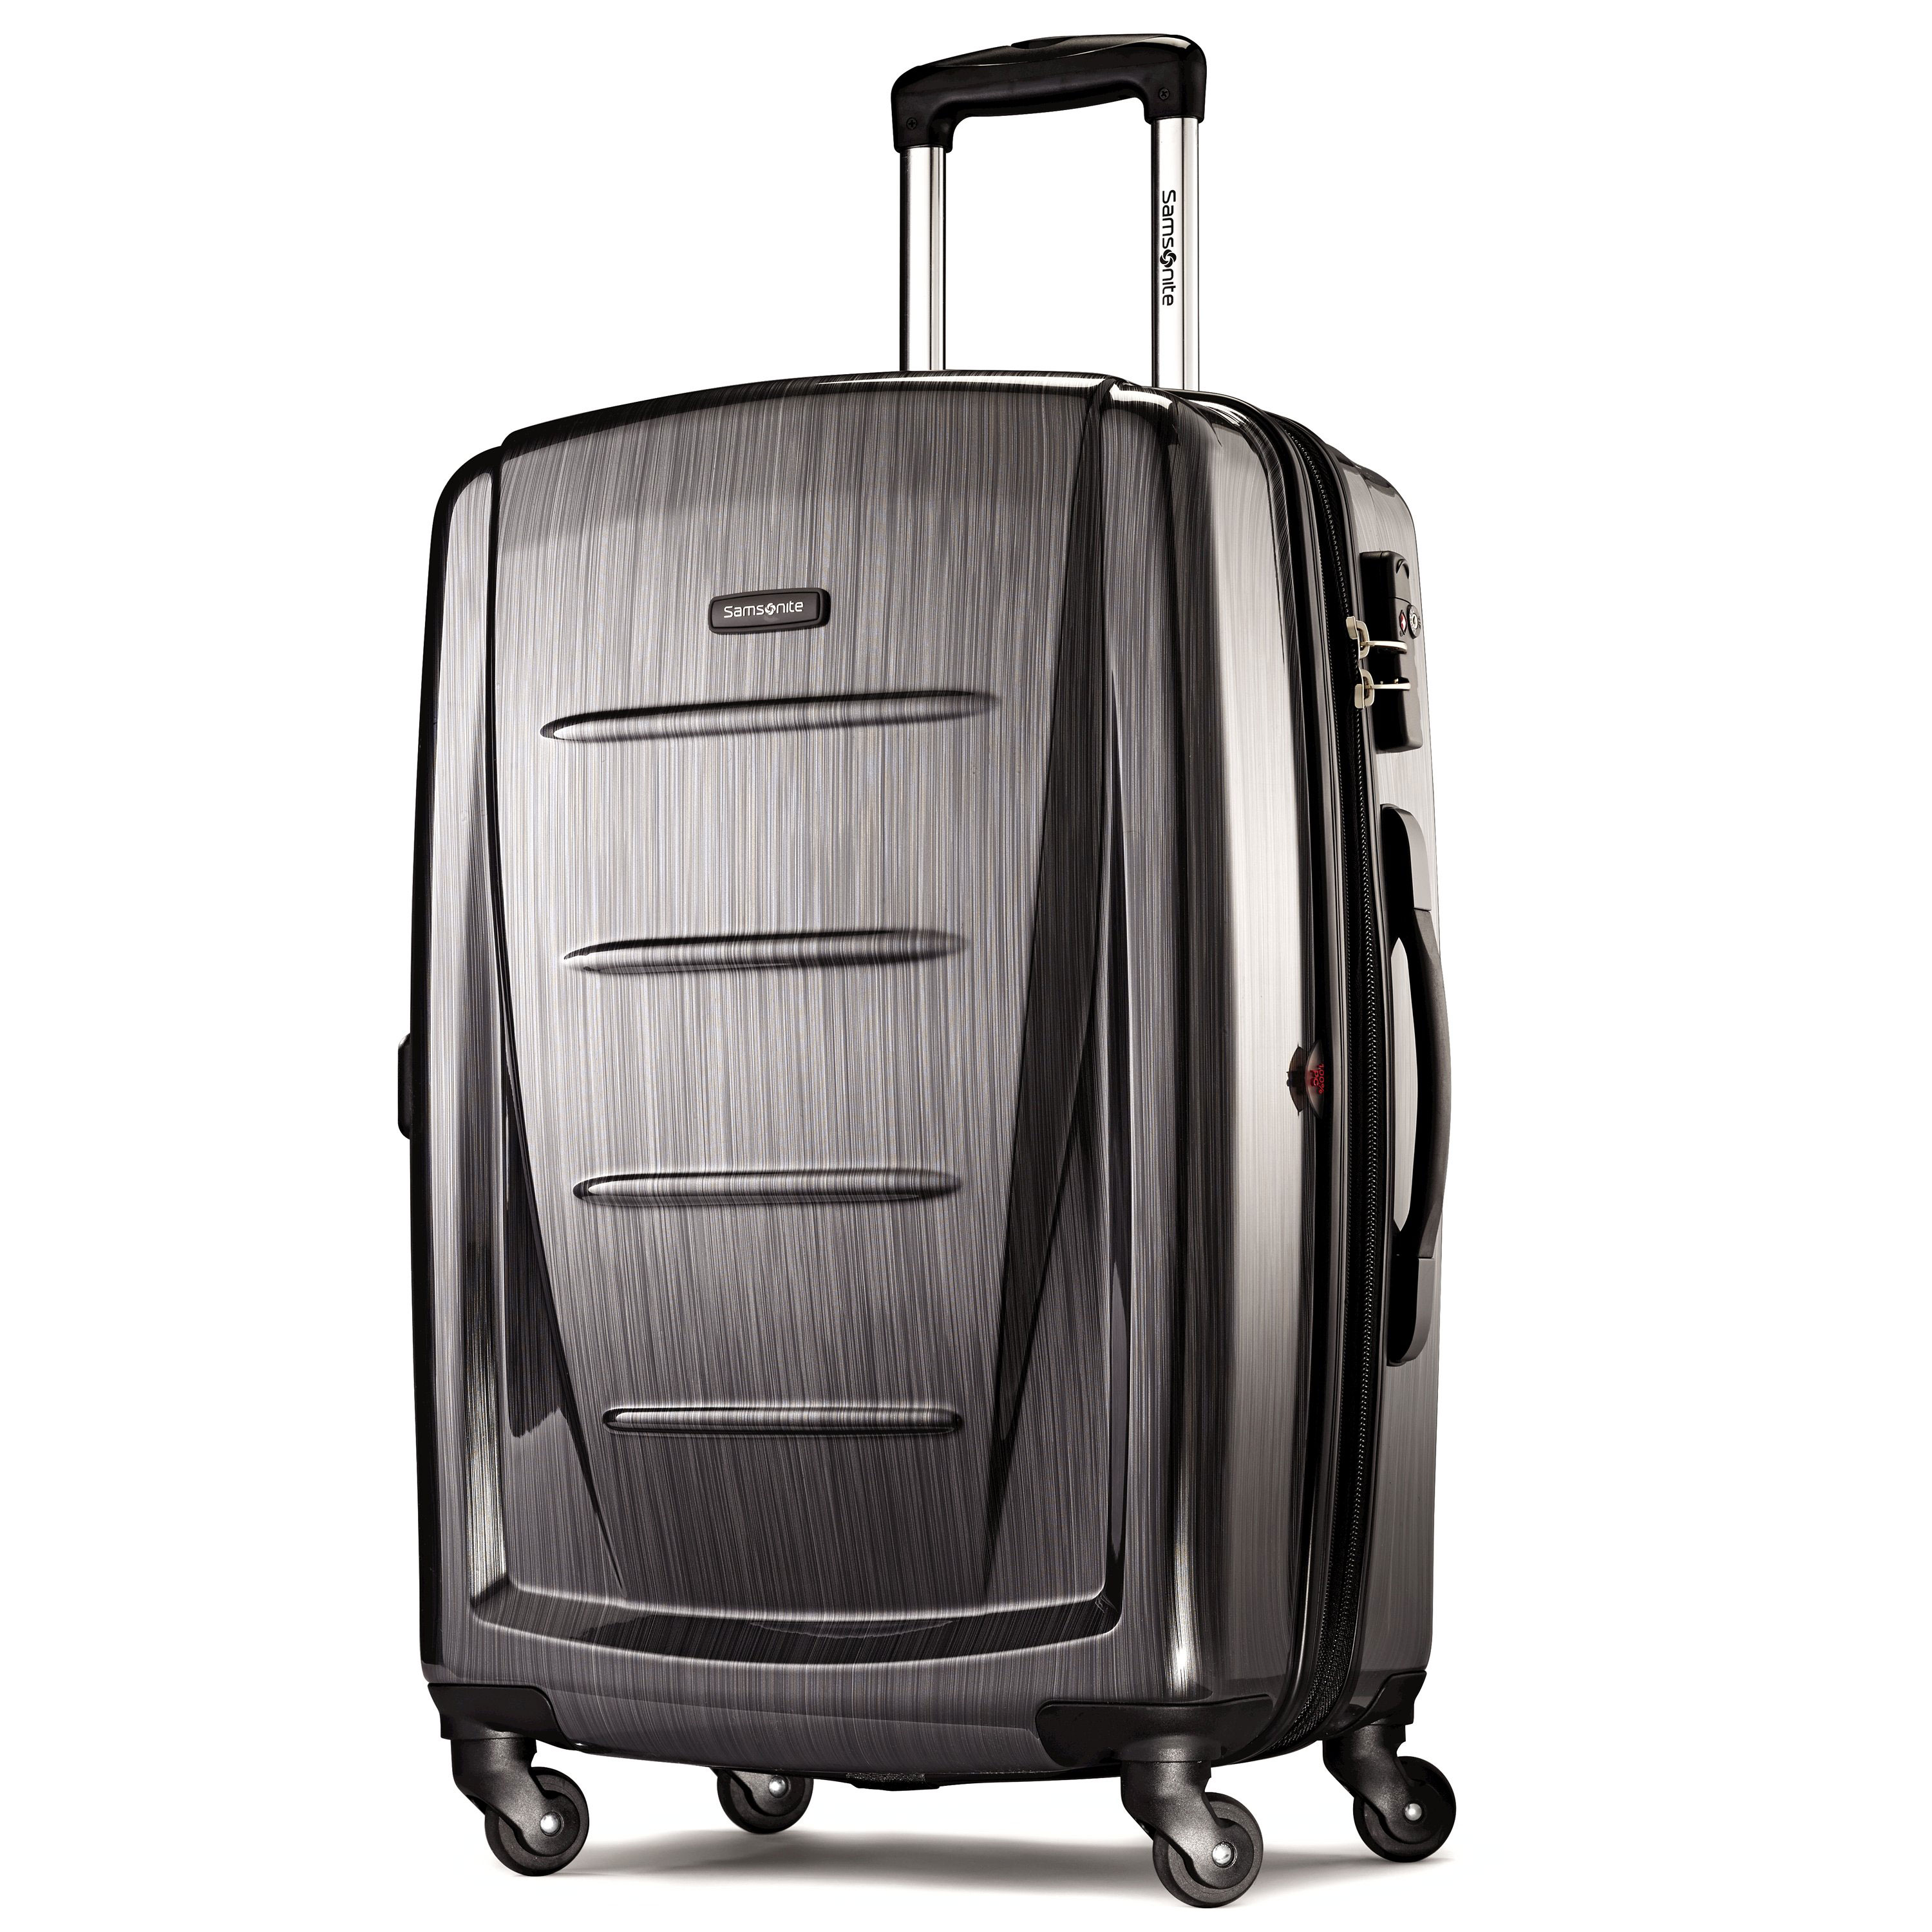 Samsonite-Winfield-2-Fashion-Spinner-Luggage thumbnail 9